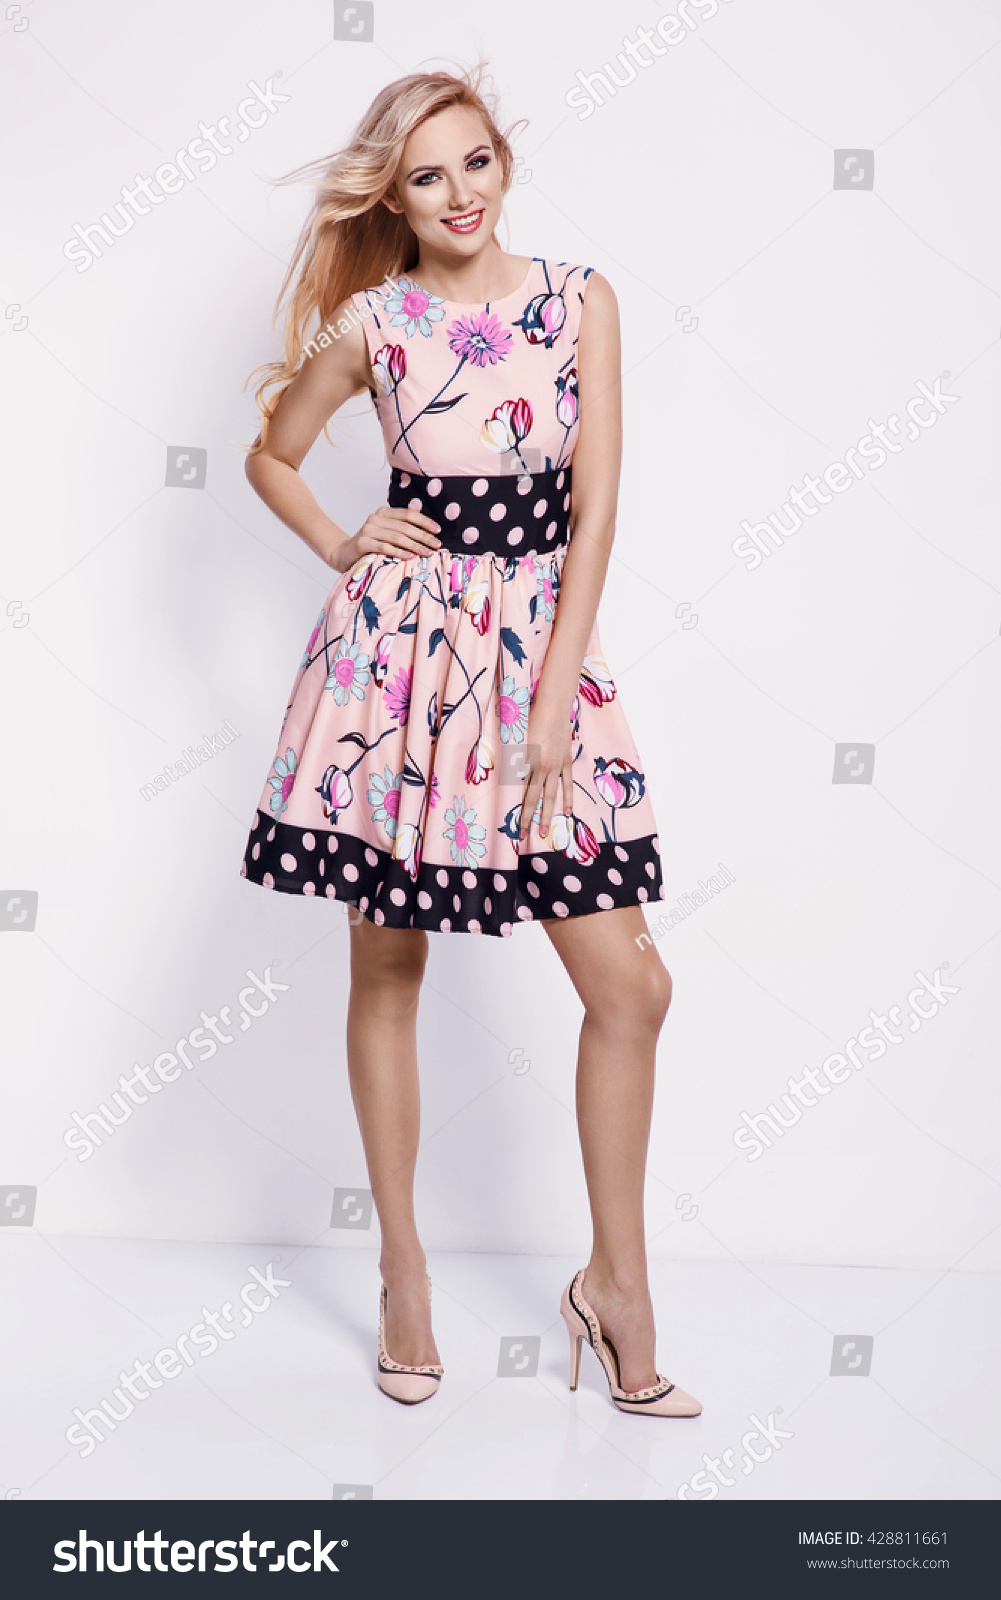 Beautiful Young Blonde Woman Nice Spring : Stockfoto (Jetzt